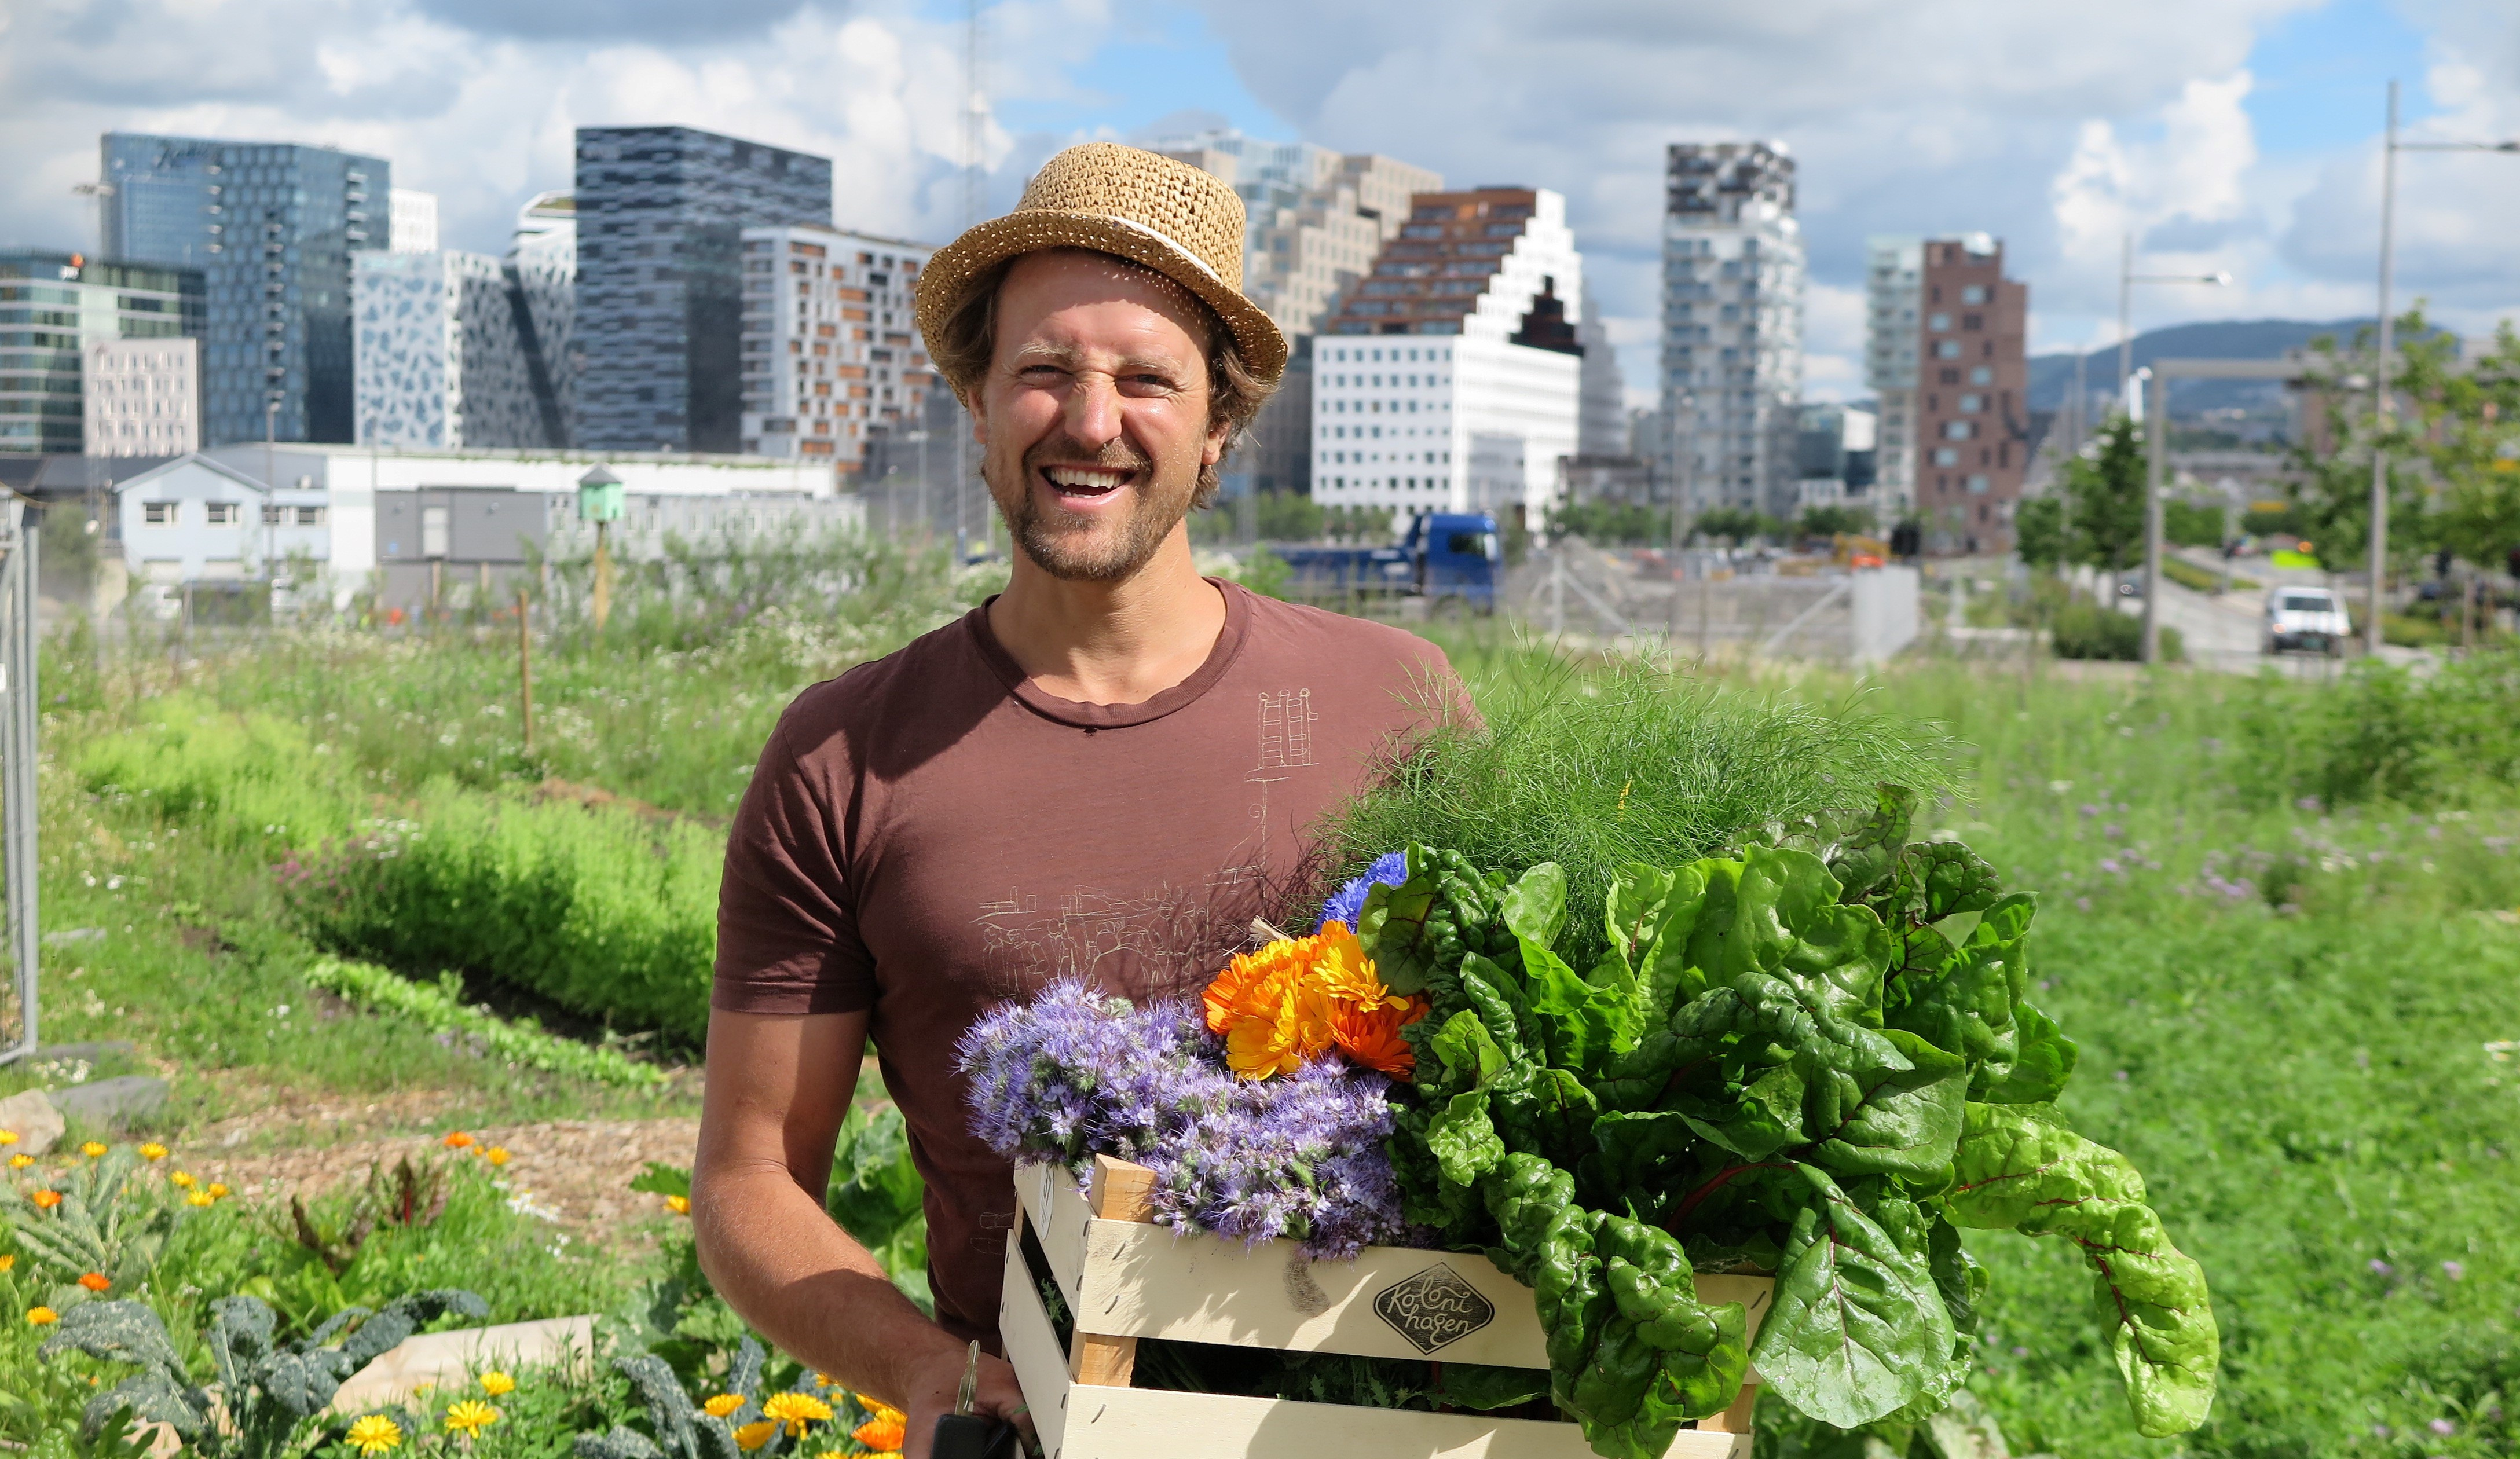 City farmer Andreas Capjon